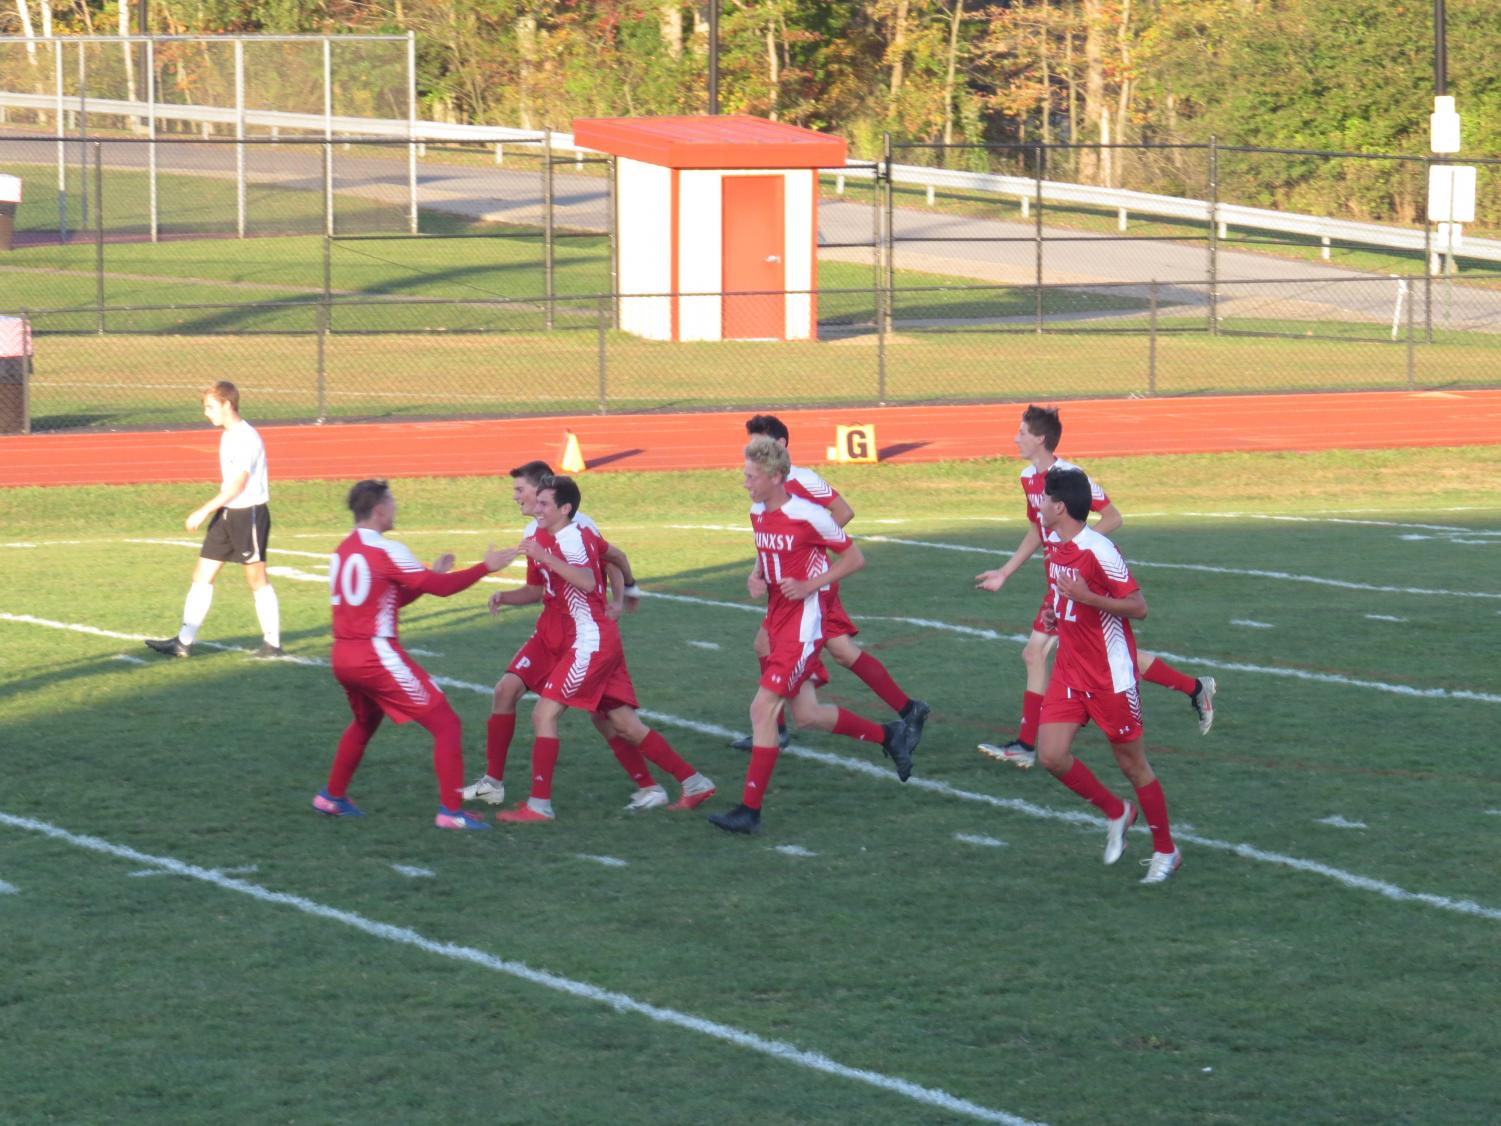 Team congratulates Gigliotti after breaking the school record for most goals in a single season